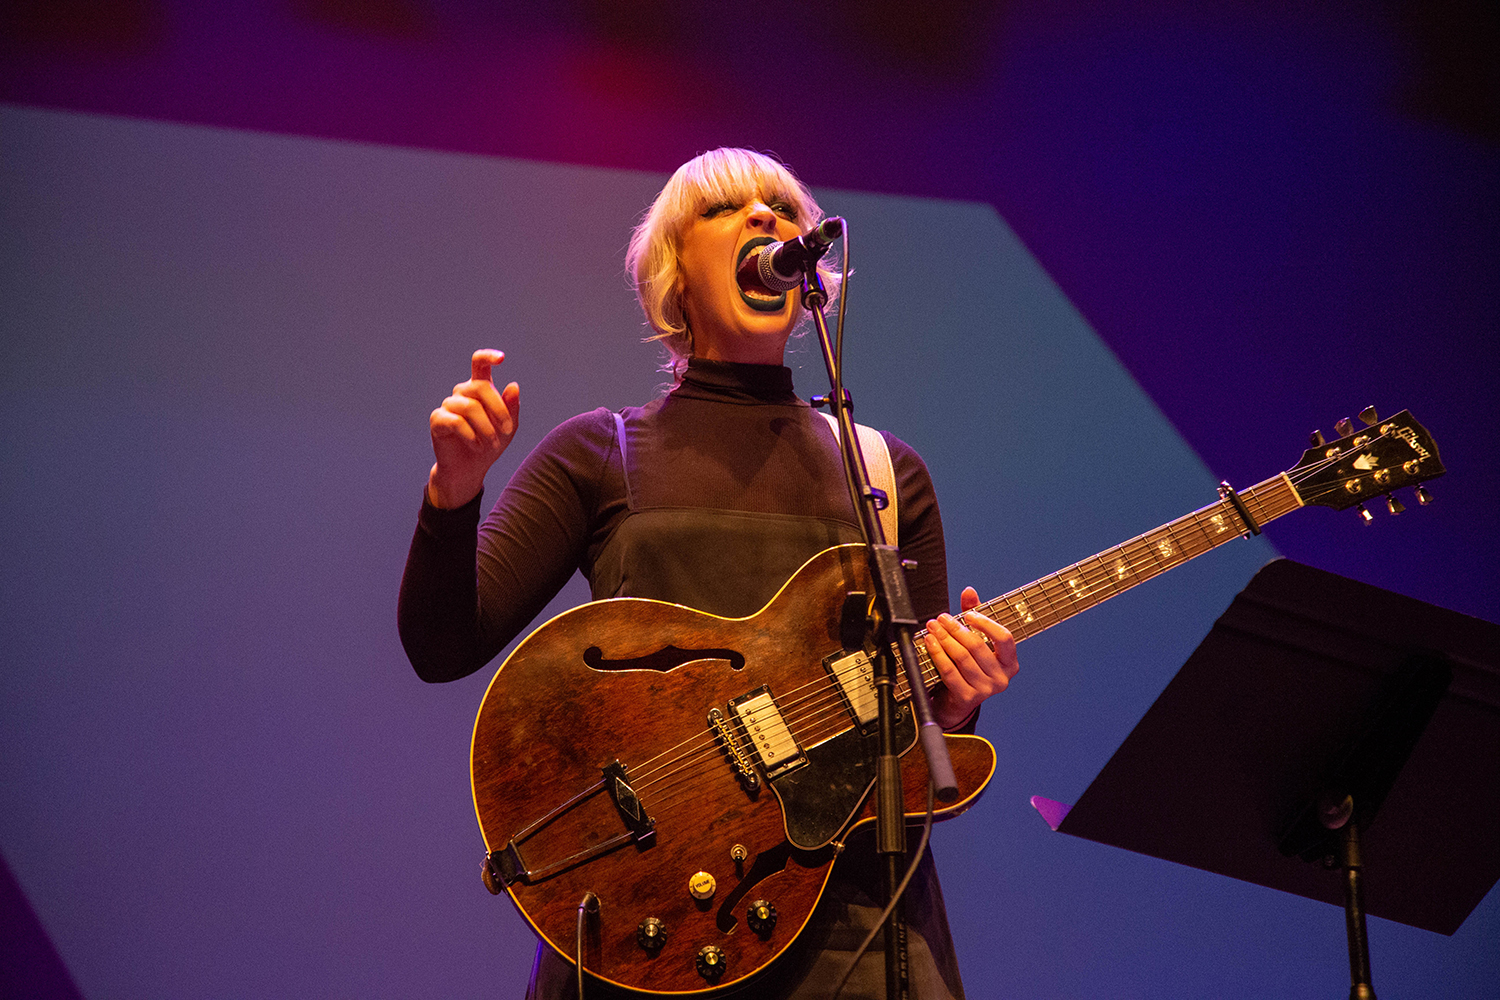 Elizabeth Moen performs at the Englert Theater on Friday, September14, 2018. The concert was part of Elizabeth Moen's LP